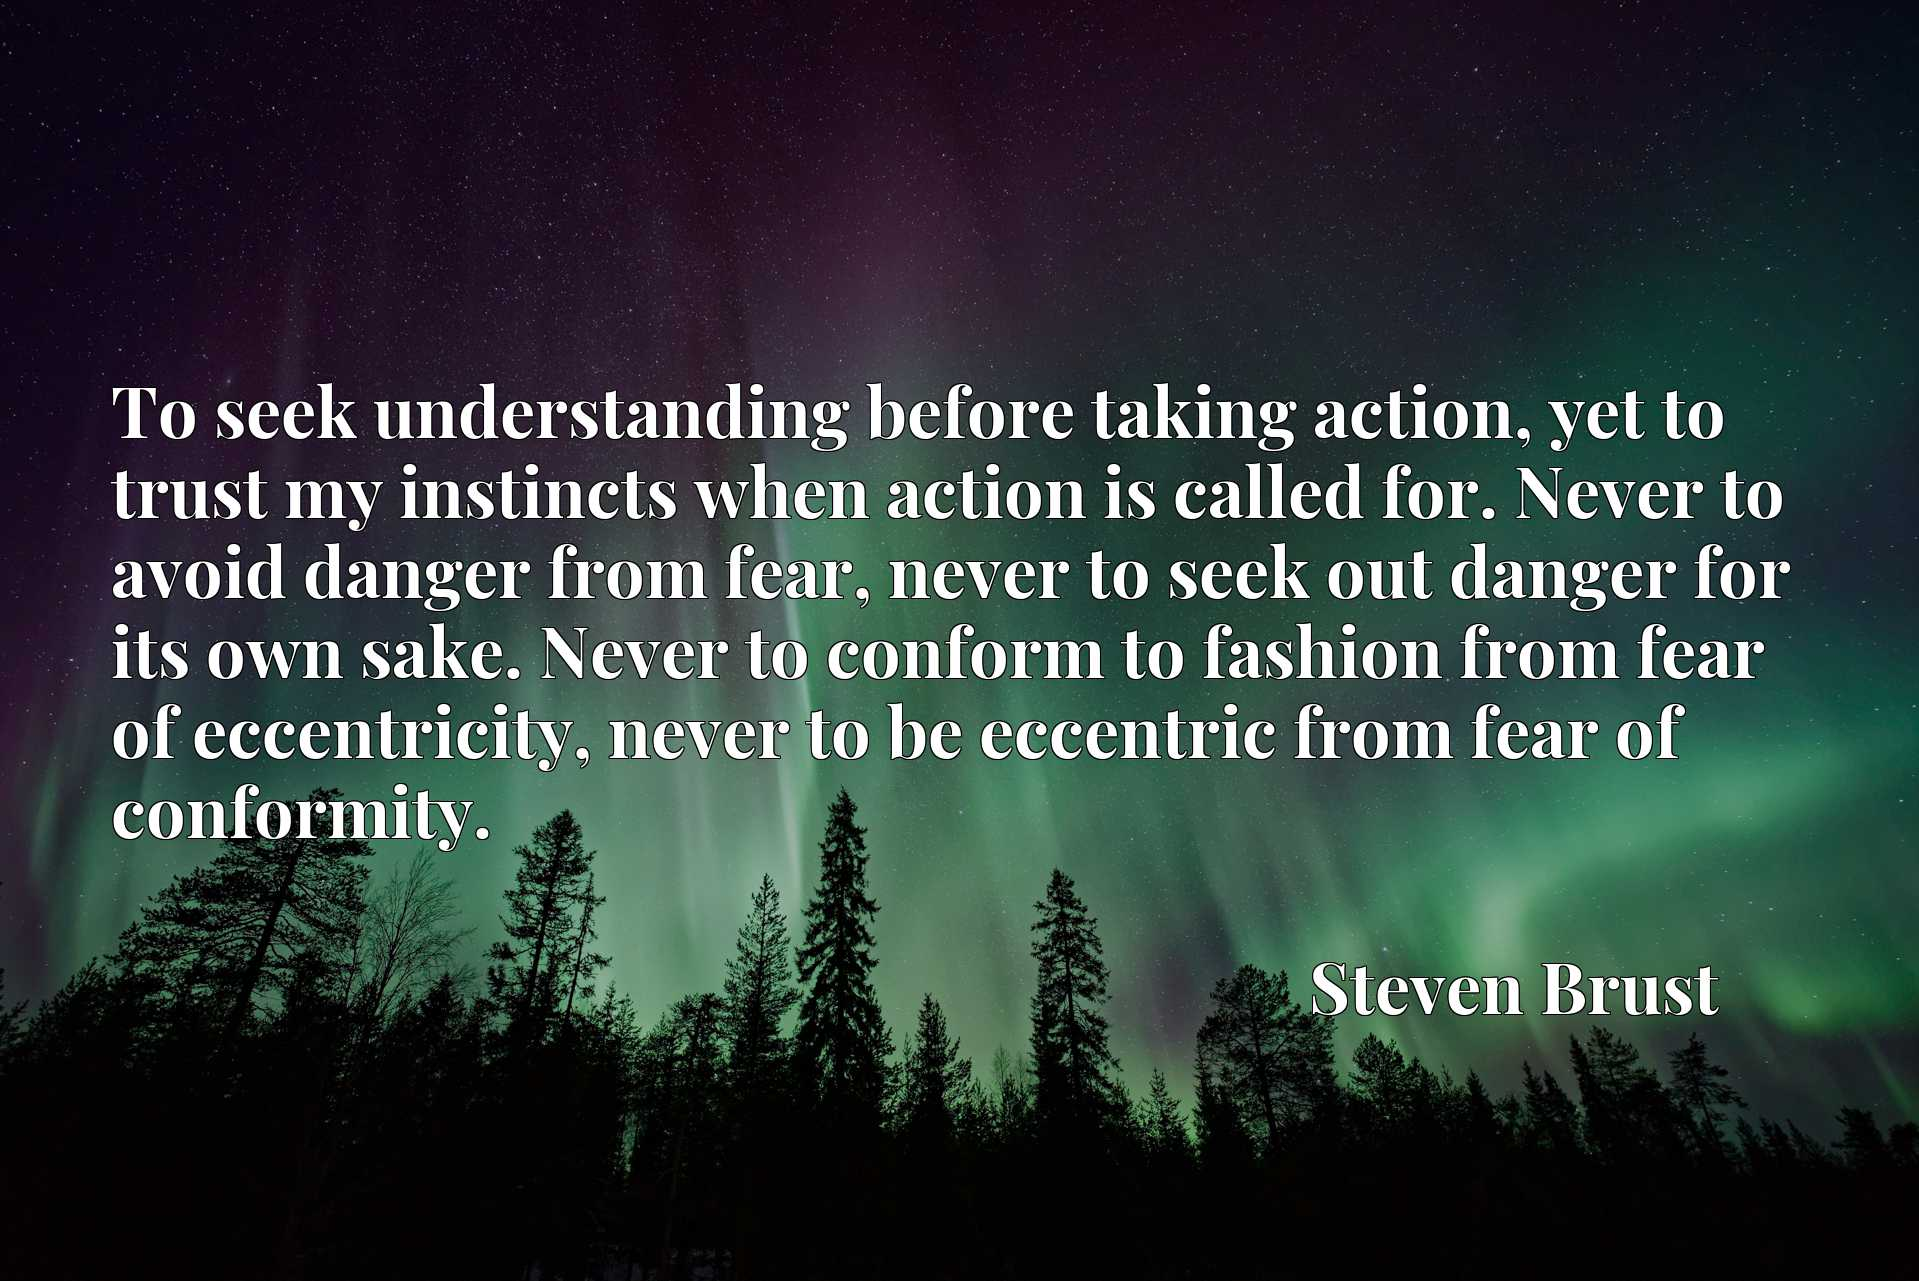 To seek understanding before taking action, yet to trust my instincts when action is called for. Never to avoid danger from fear, never to seek out danger for its own sake. Never to conform to fashion from fear of eccentricity, never to be eccentric from fear of conformity.